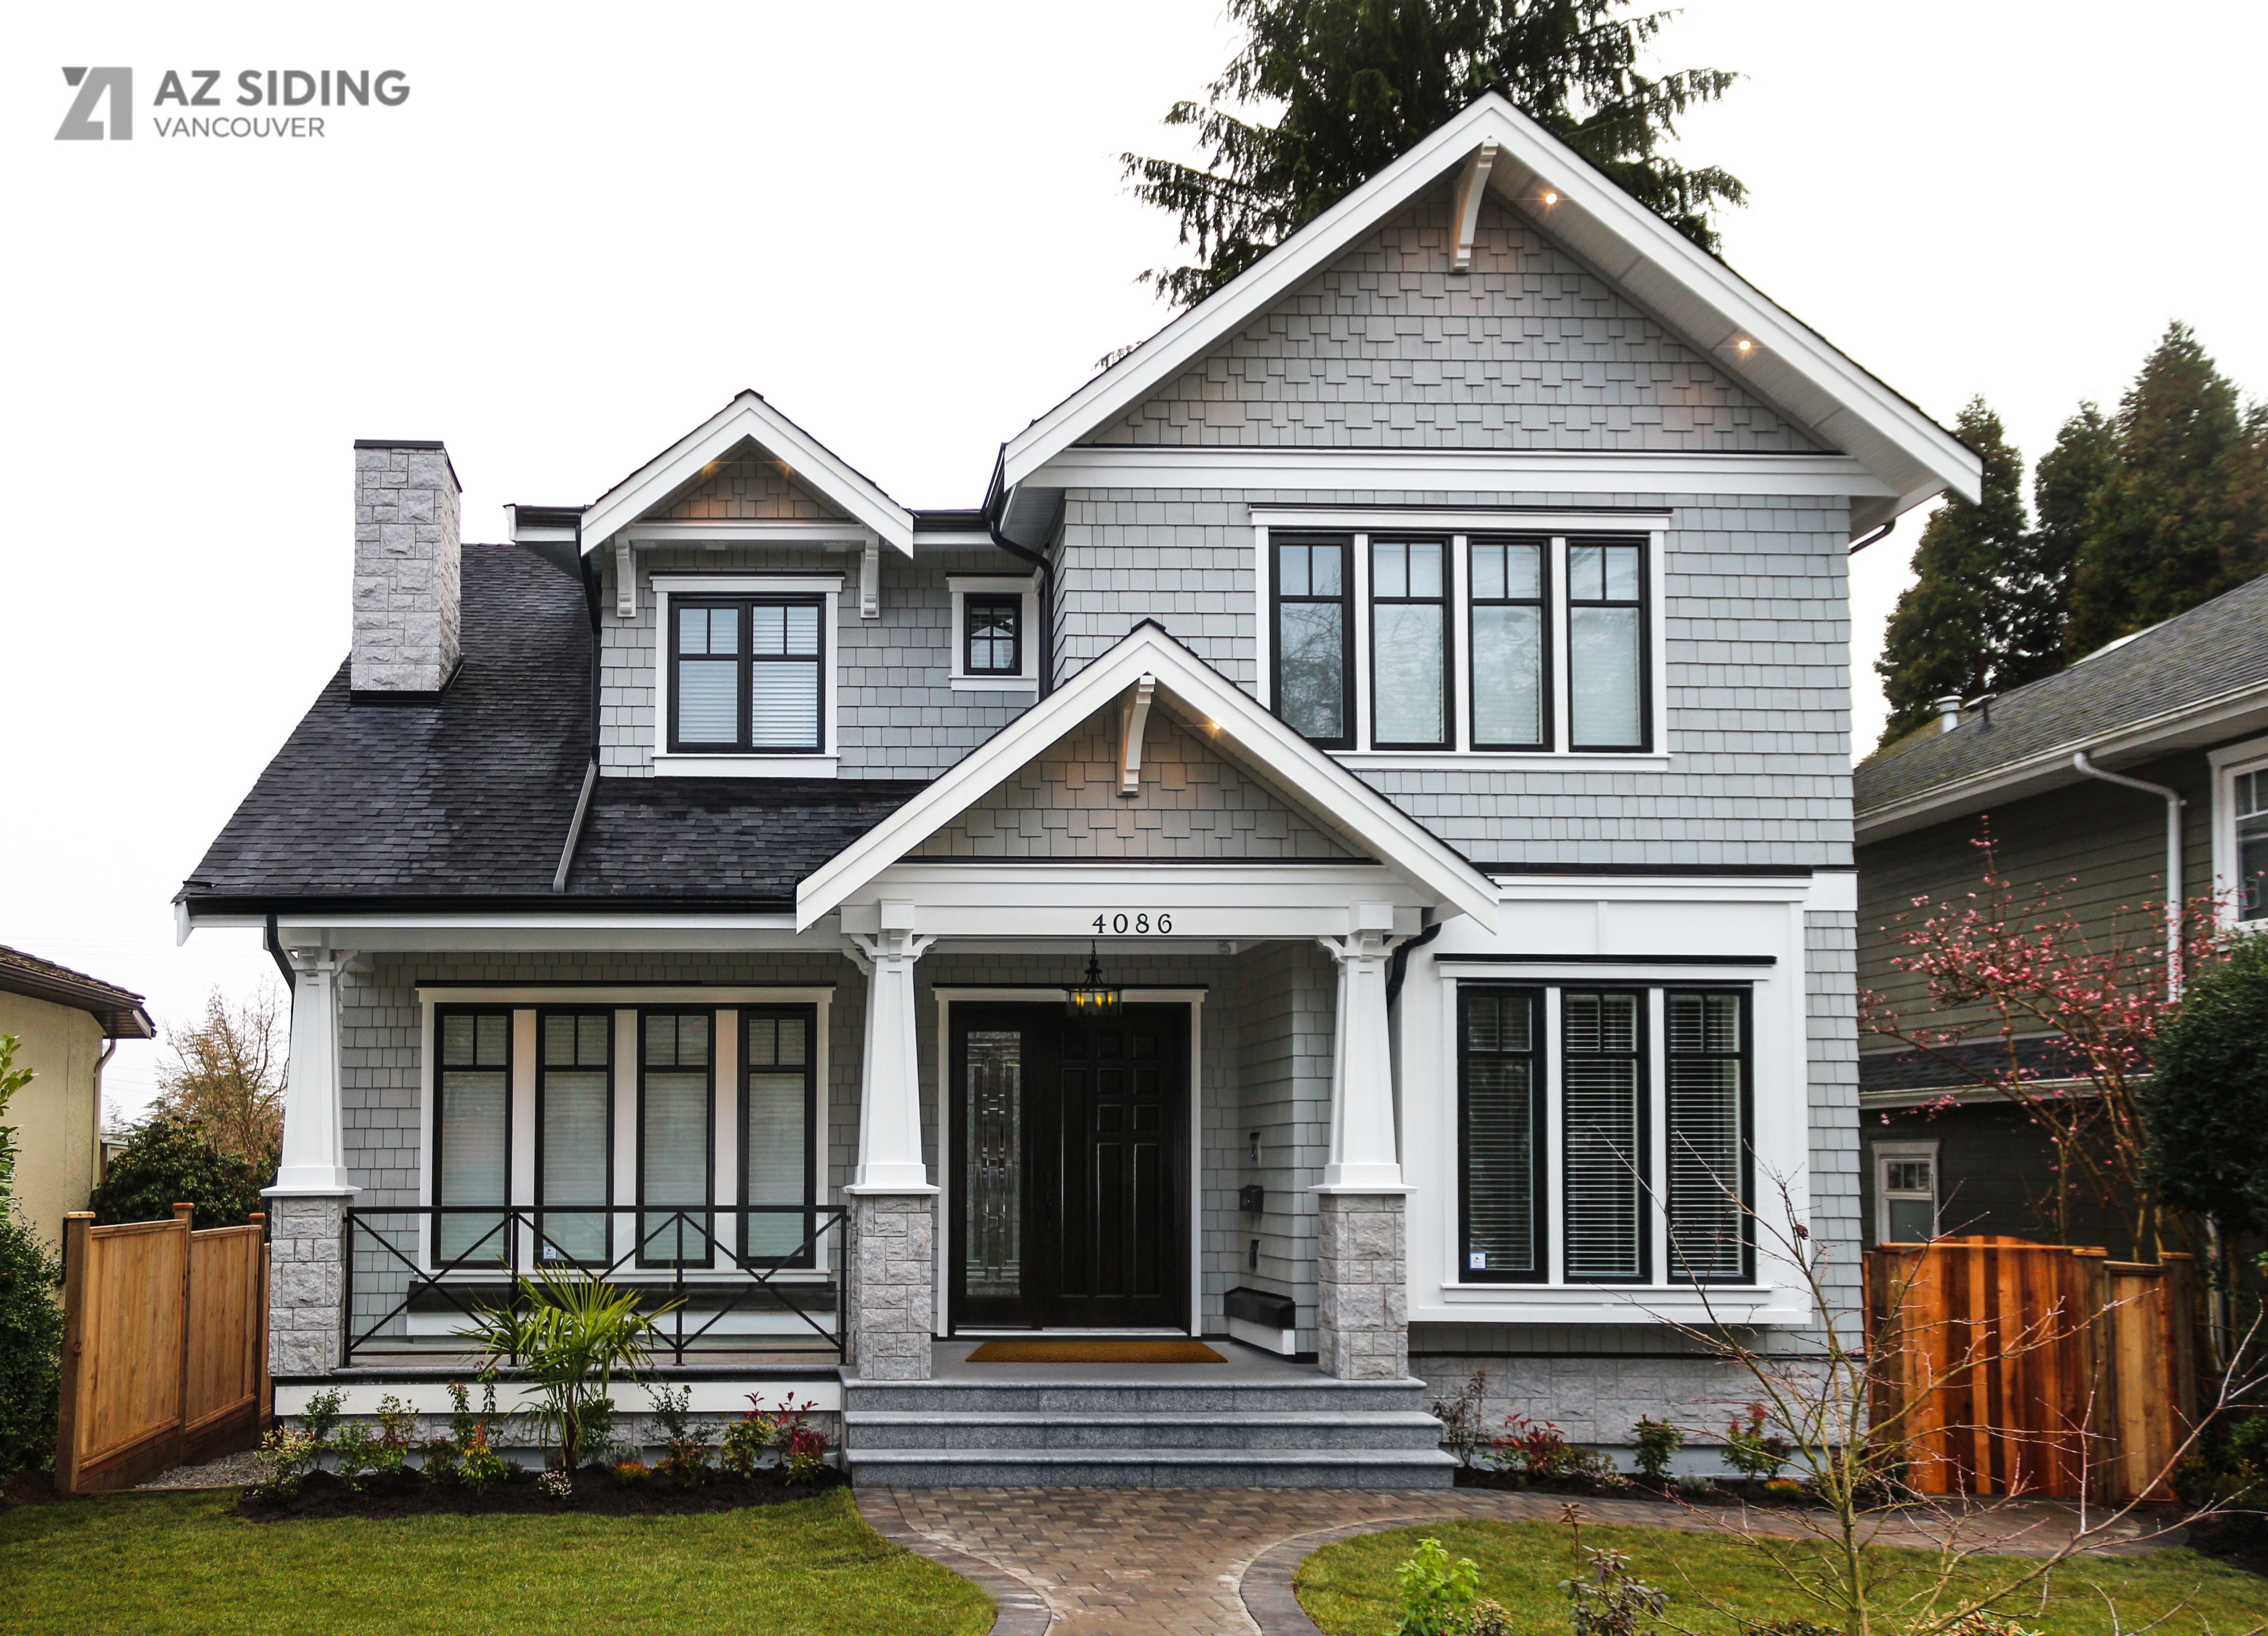 7 Popular Siding Materials To Consider: How To Choose The Best Color Siding For Your Vancouver